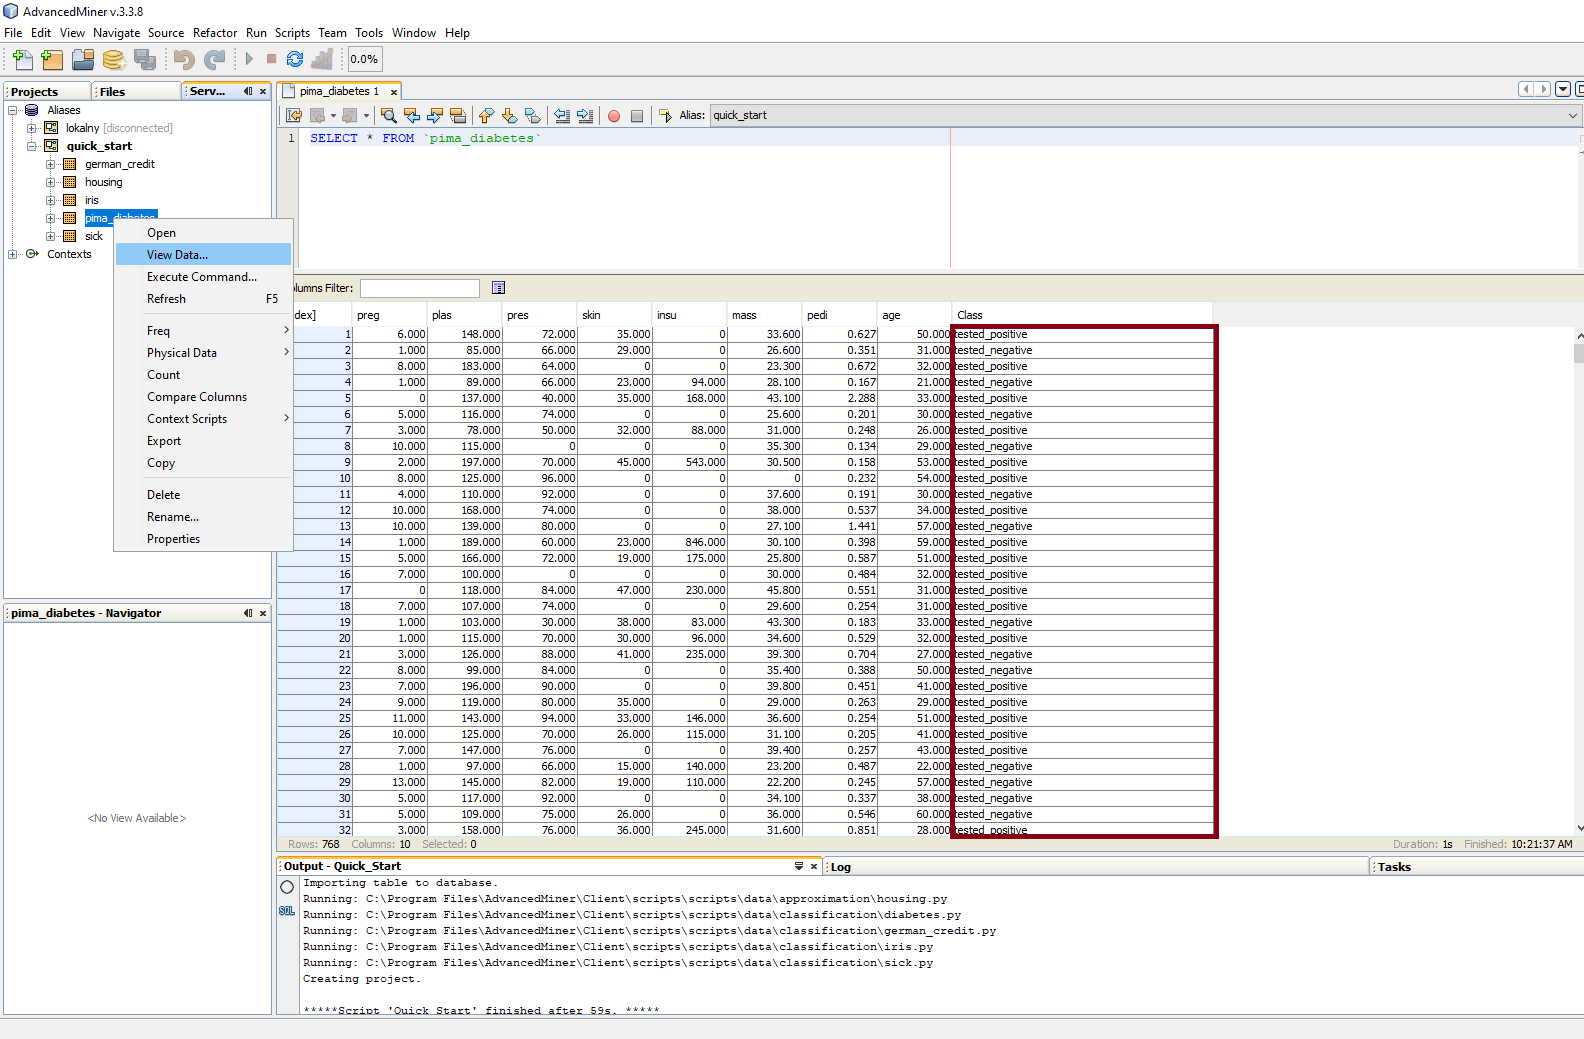 Building predictive models in AdvancedMiner - 5